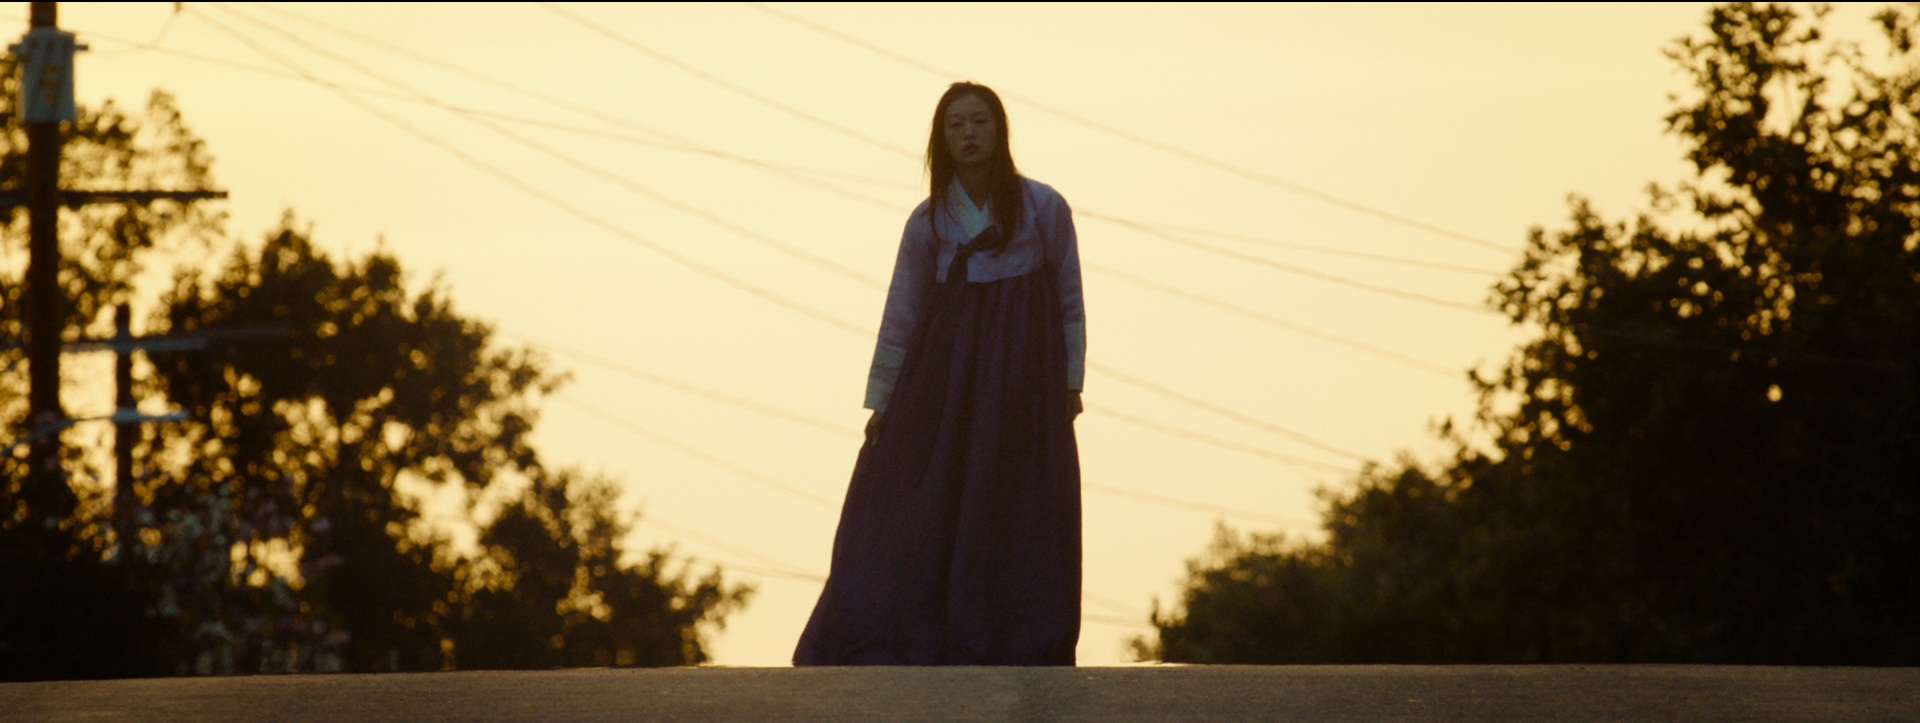 Ms. Purple  production still feat. Tiffany Chu as Kaisie - Courtesy of the Artist